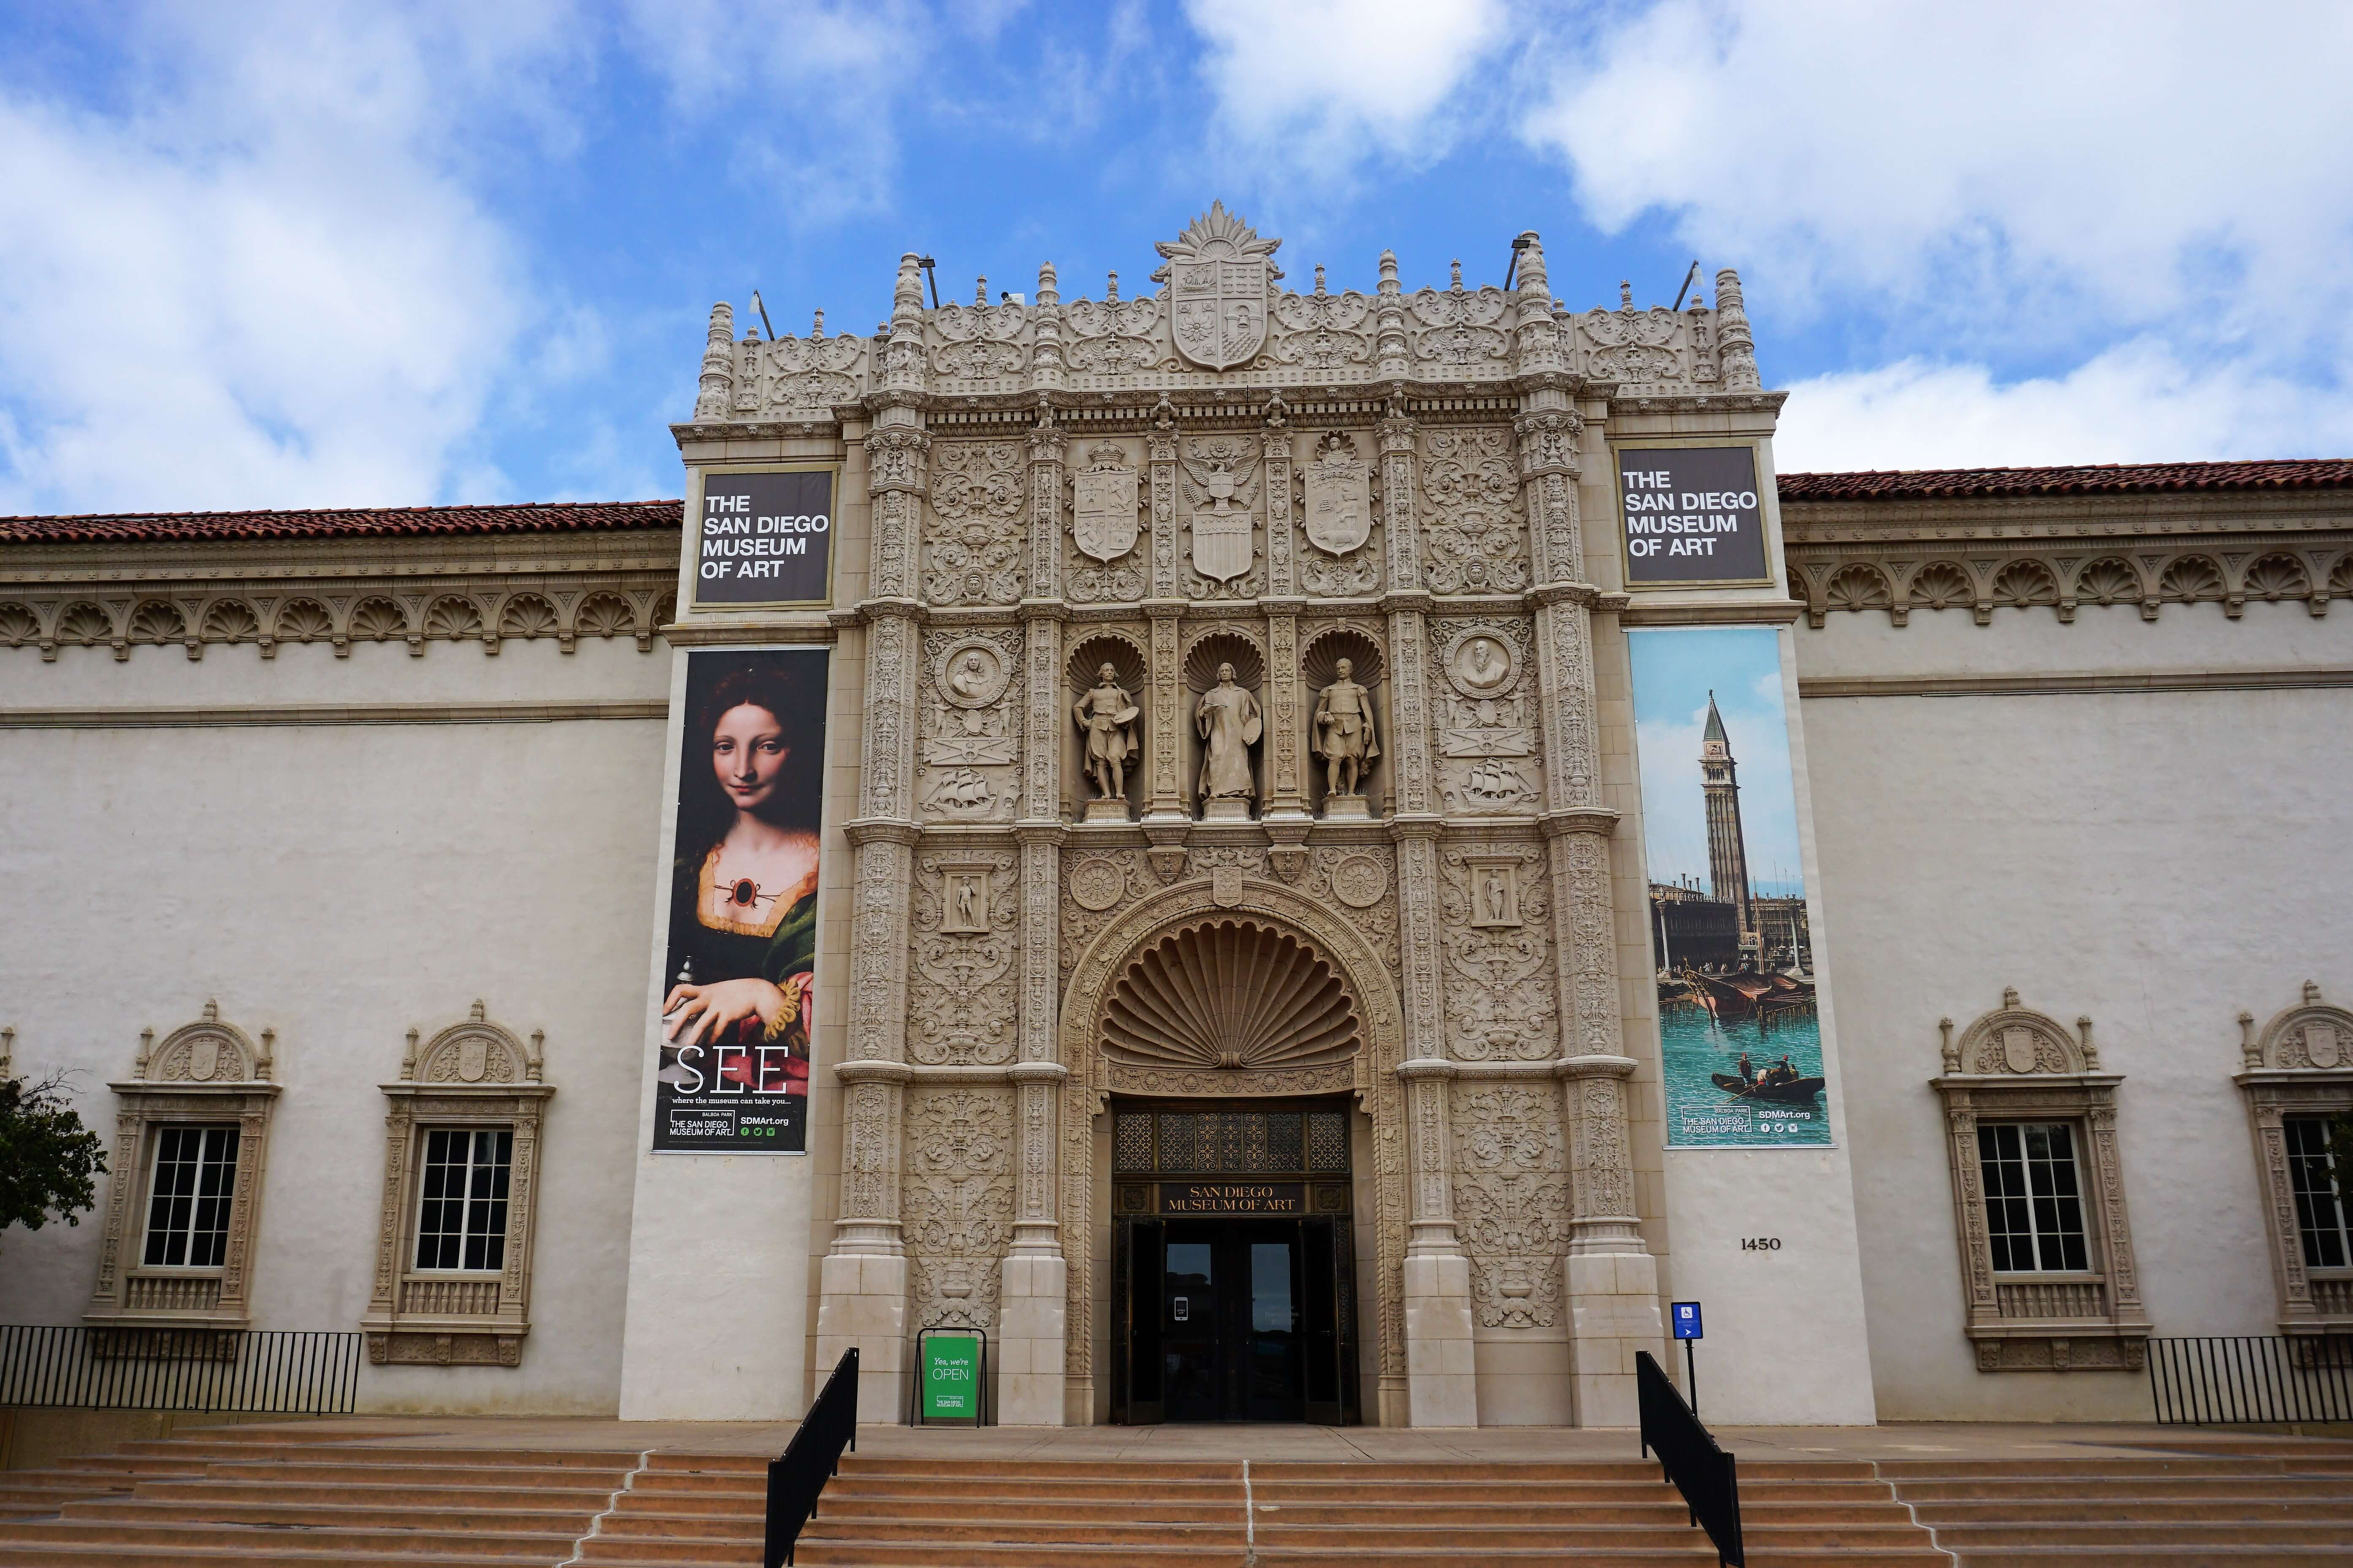 Exterior view of the San Diego Museum of Art